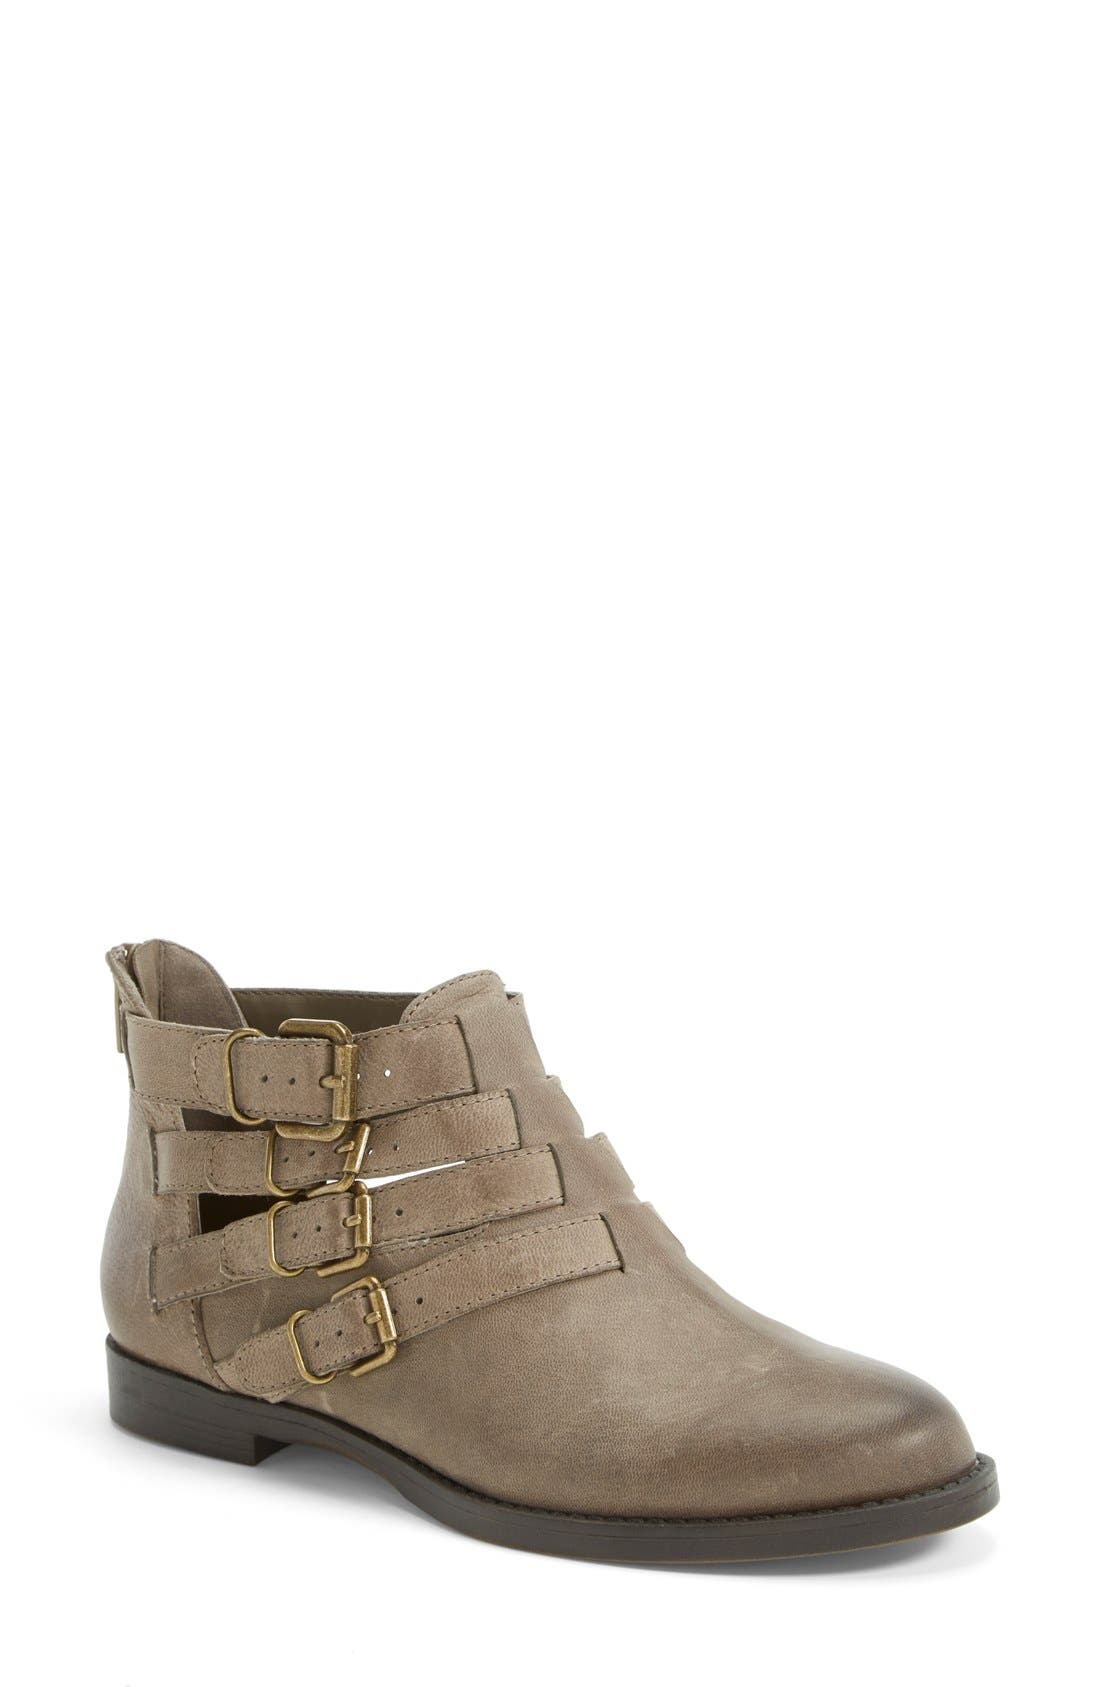 BELLA VITA 'Ronan' Buckle Leather Bootie